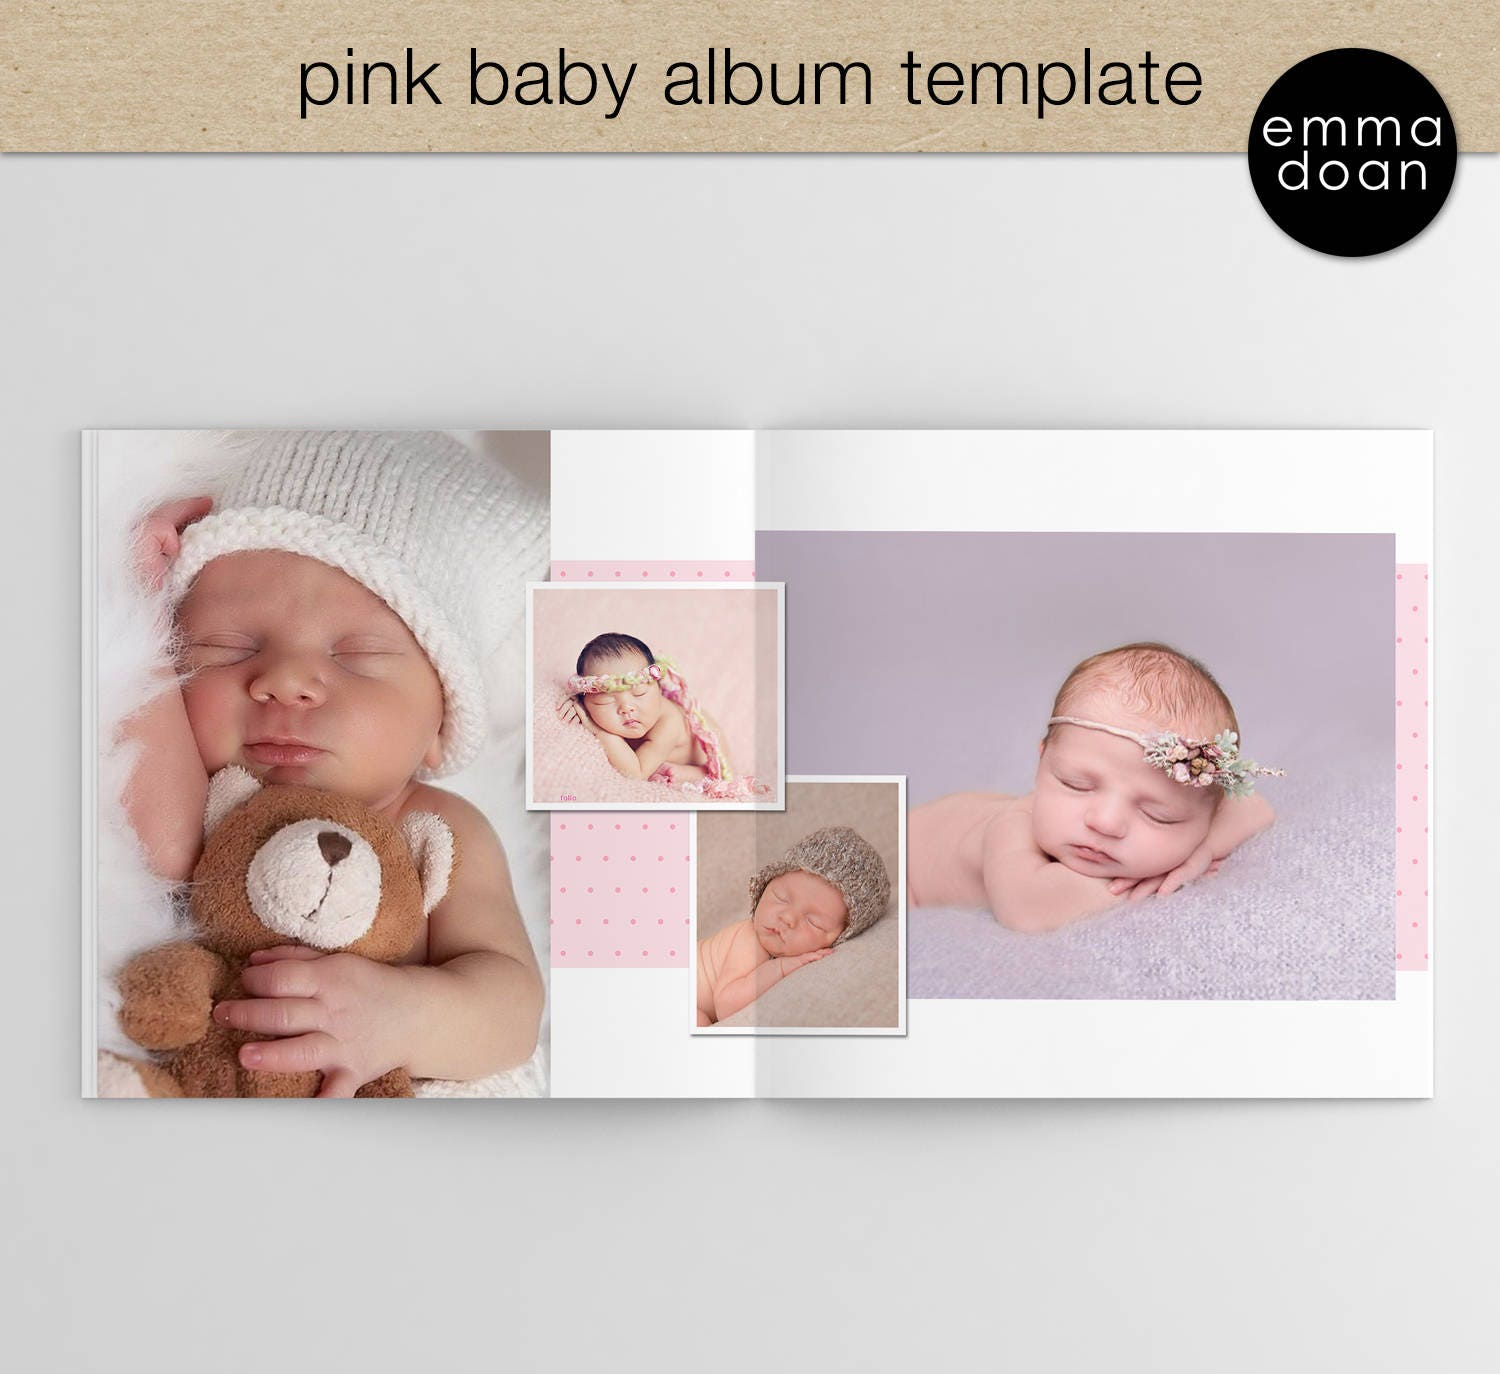 Baby Album Templates For Pographers | Funky Baby Album Templates For Photographers Embellishment